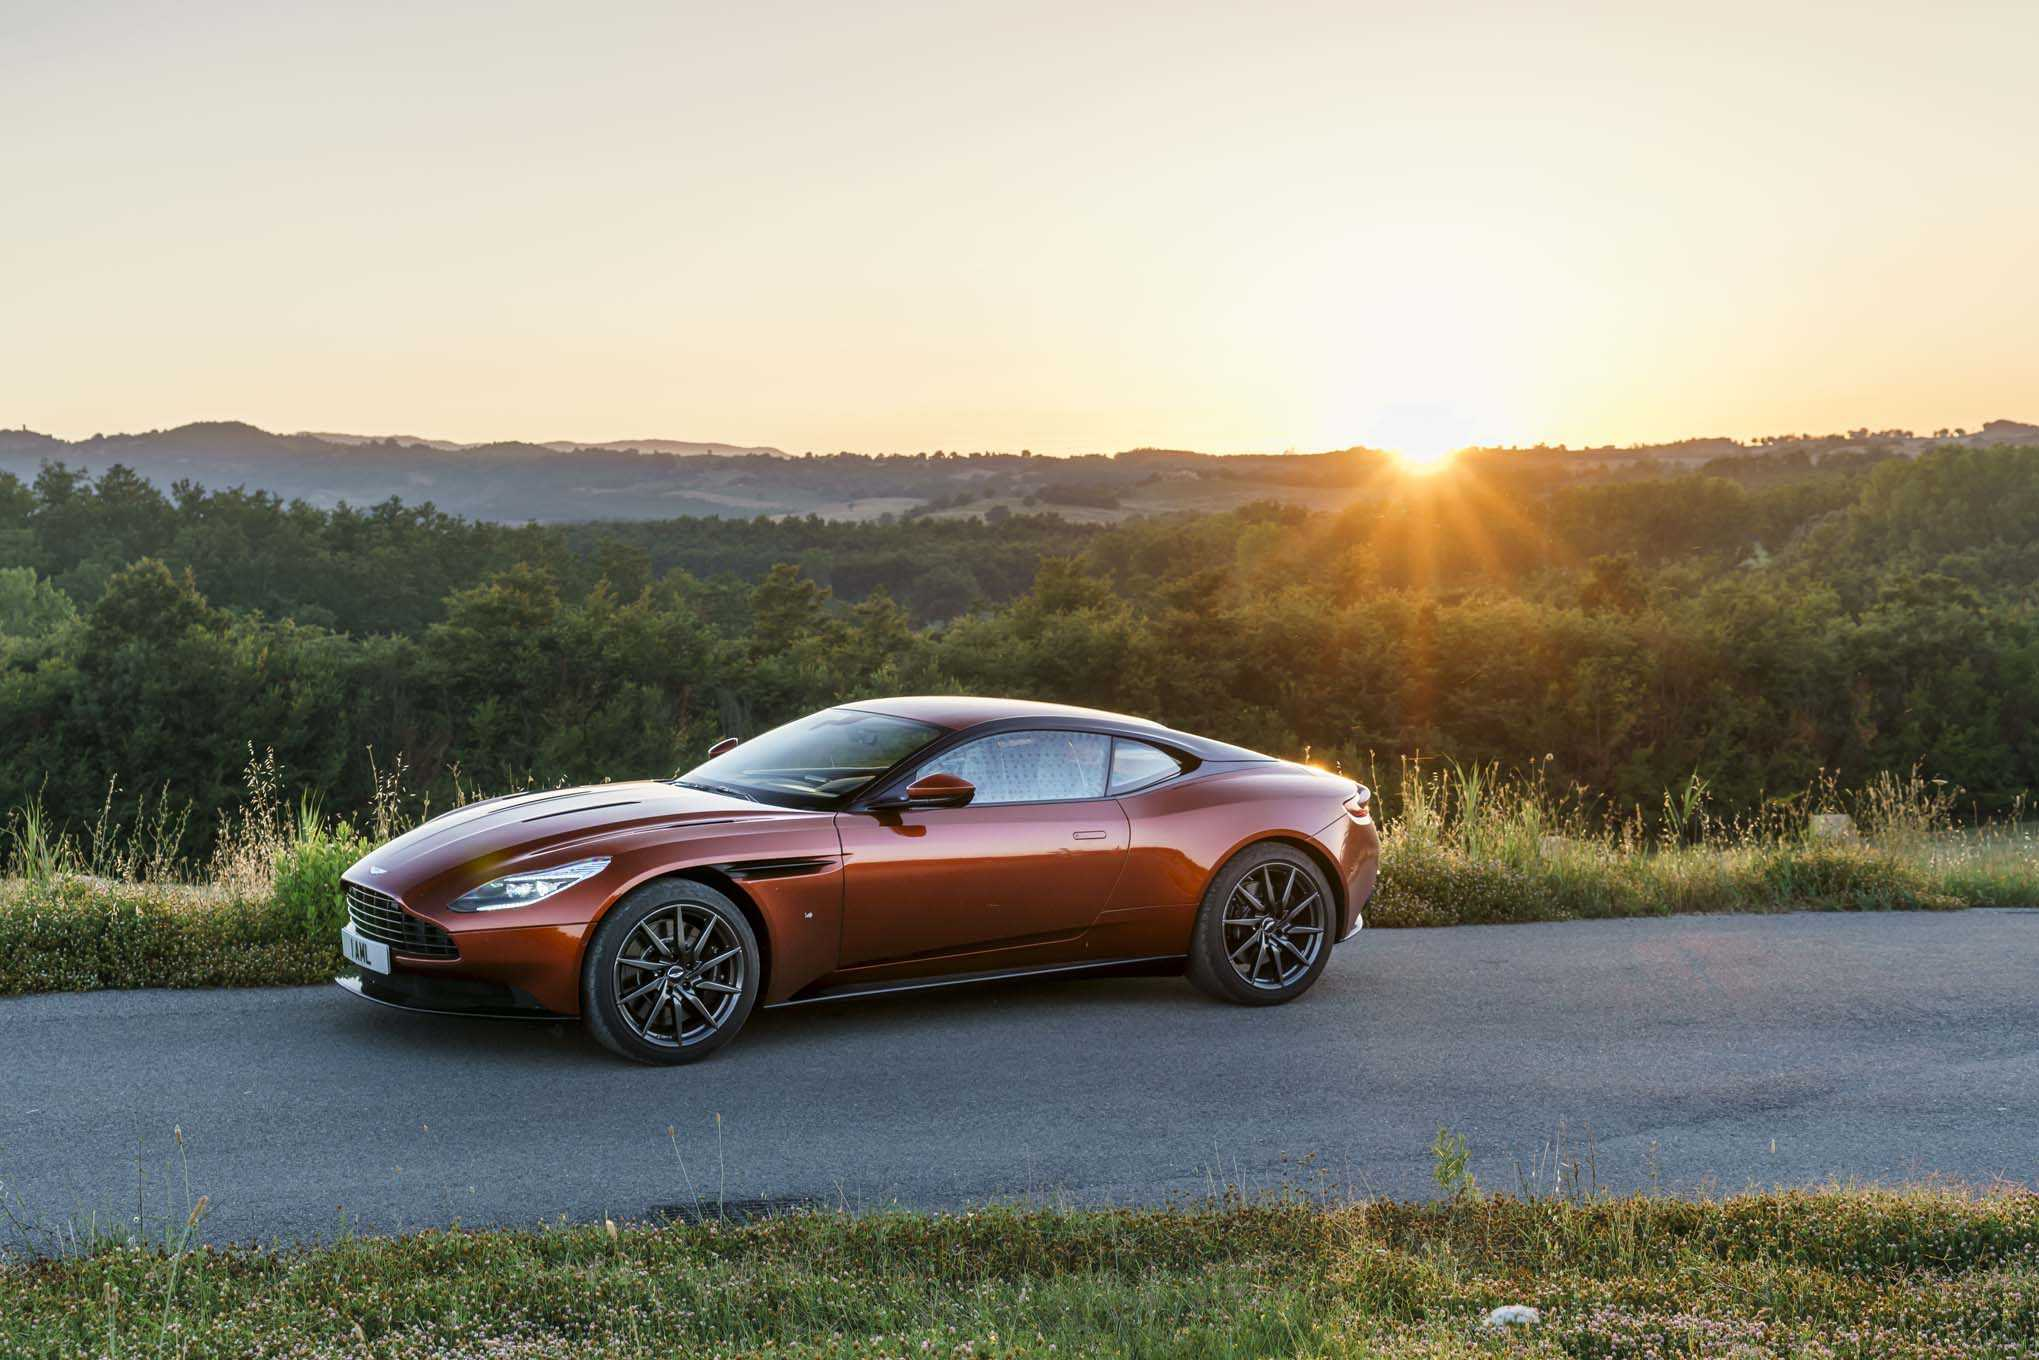 Aston Martin Plans To Expand Lineup New Models In Next Years - Aston martin lineup